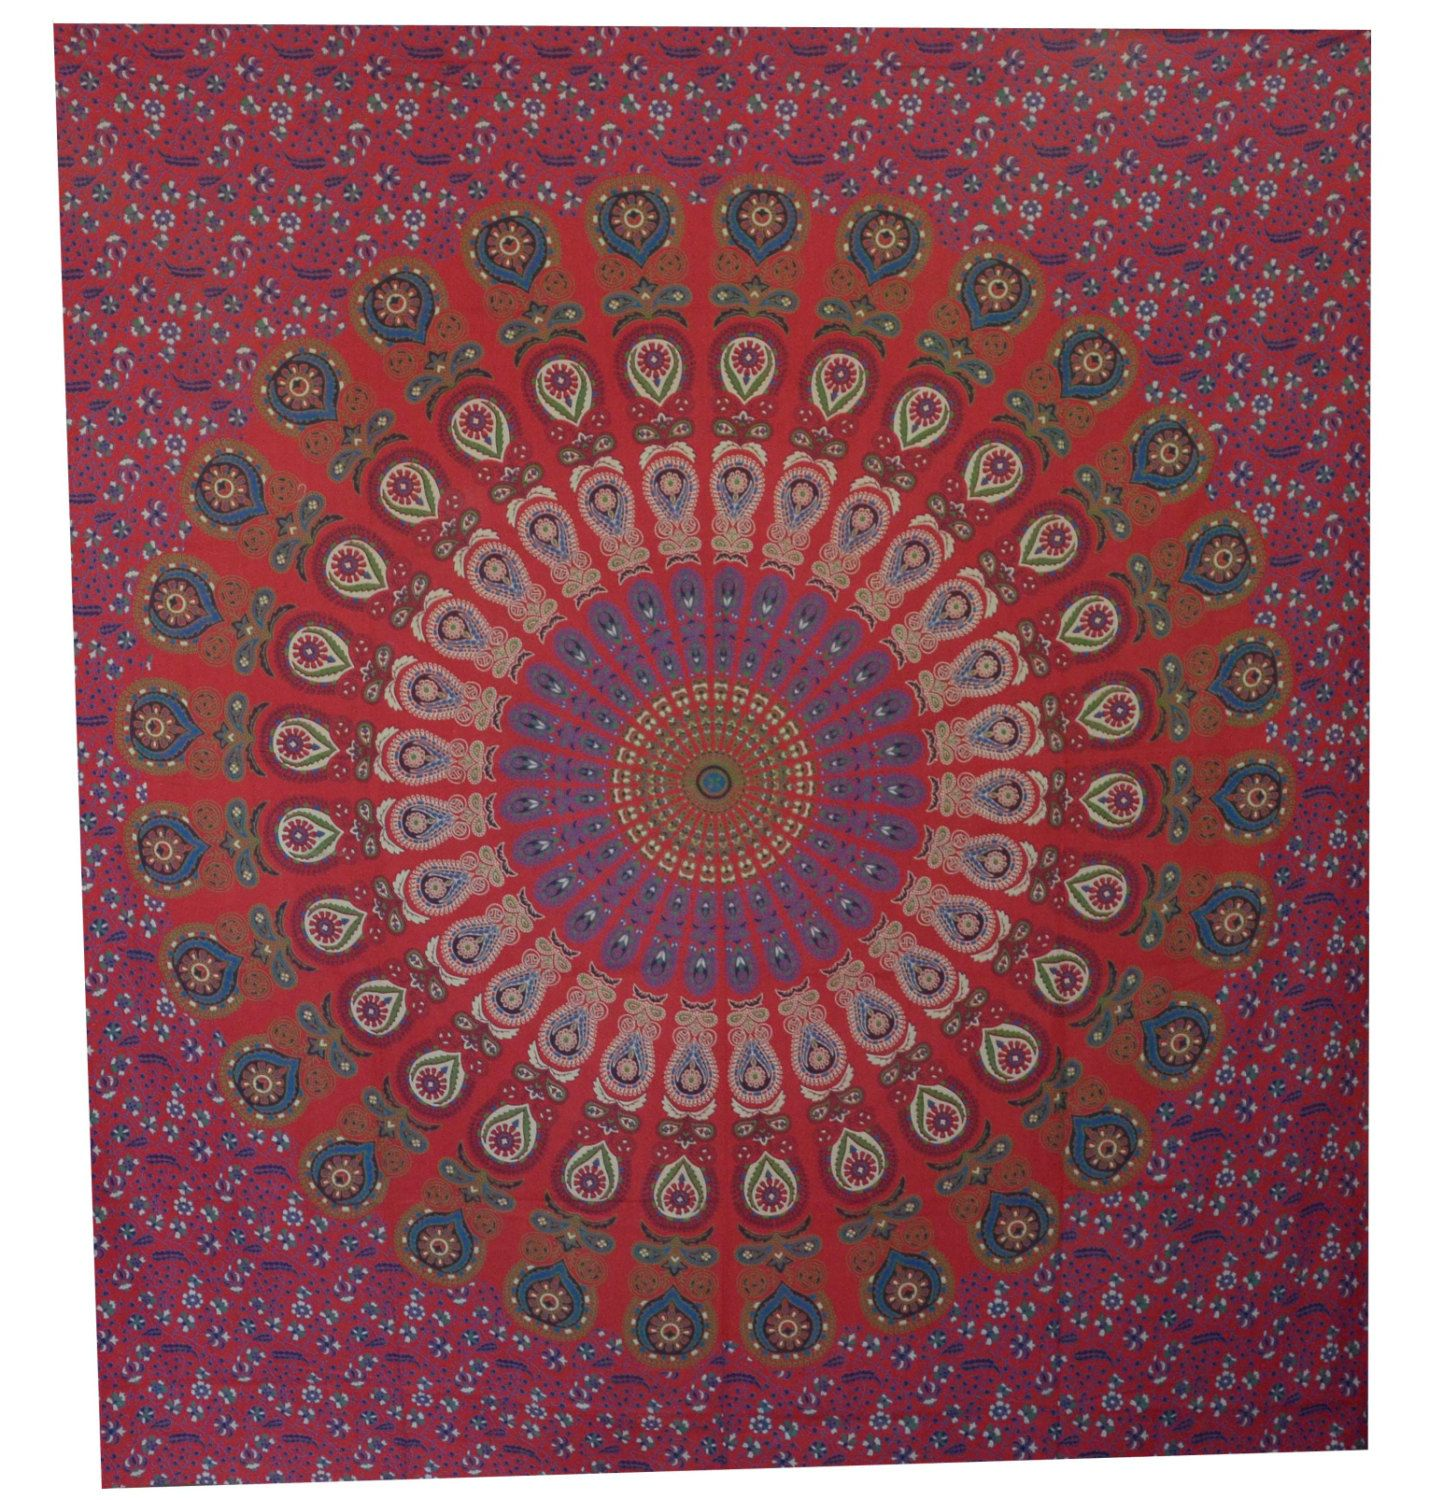 Hippie tapestries tapestry wall hanging mandala tapestries red